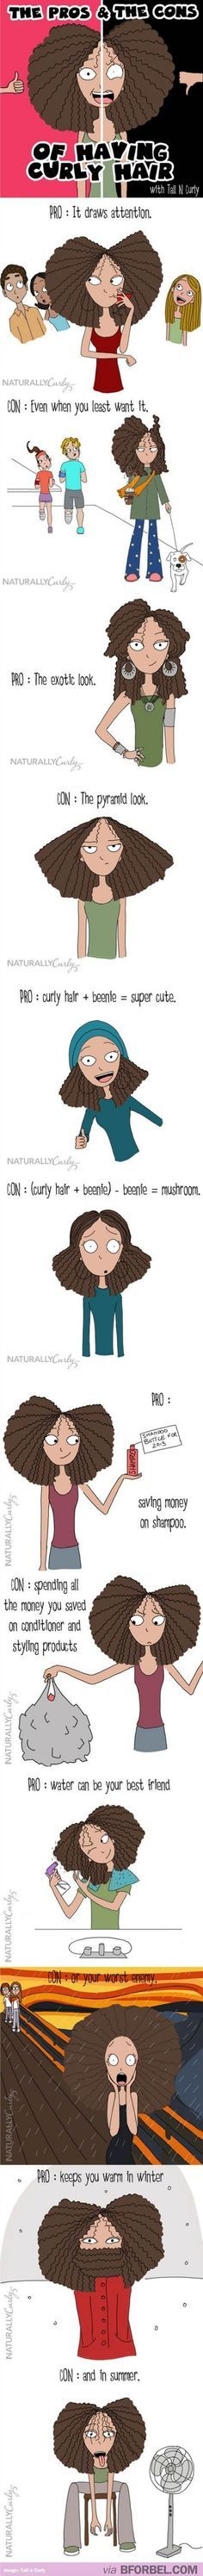 The Pros & The Cons of Having Curly Hair